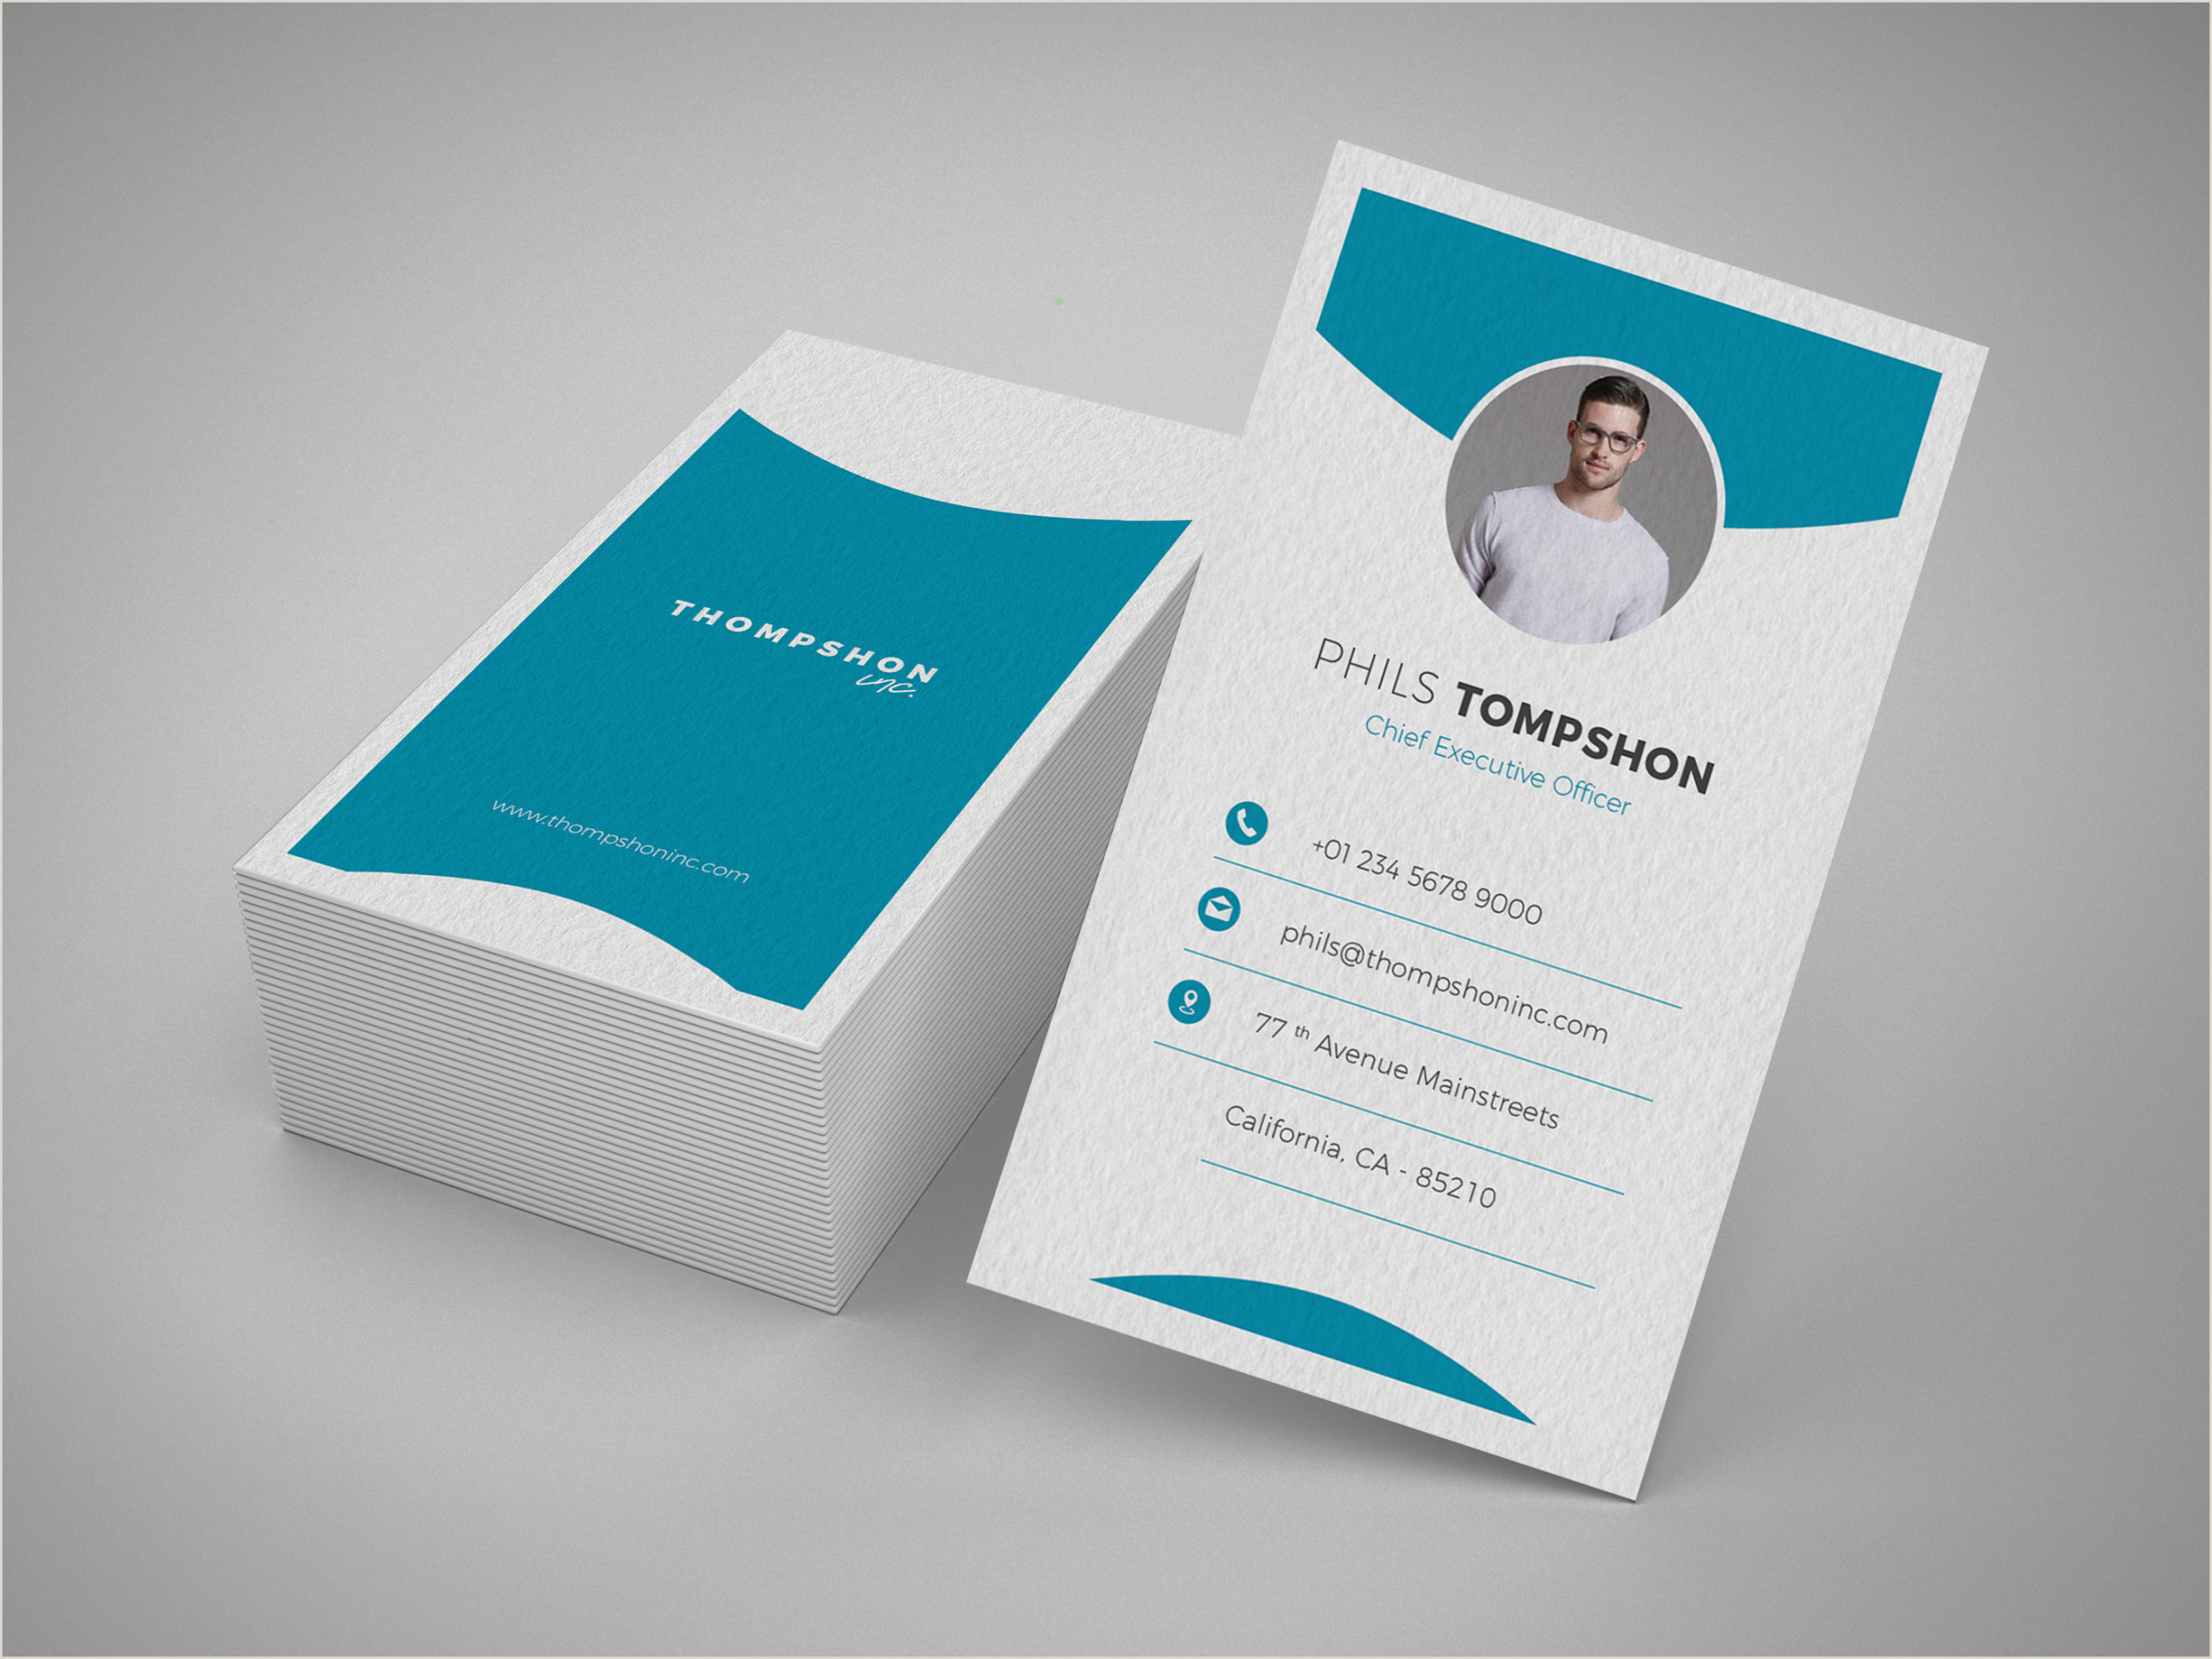 Freelance Graphic Designer Business Cards Professional Business Card